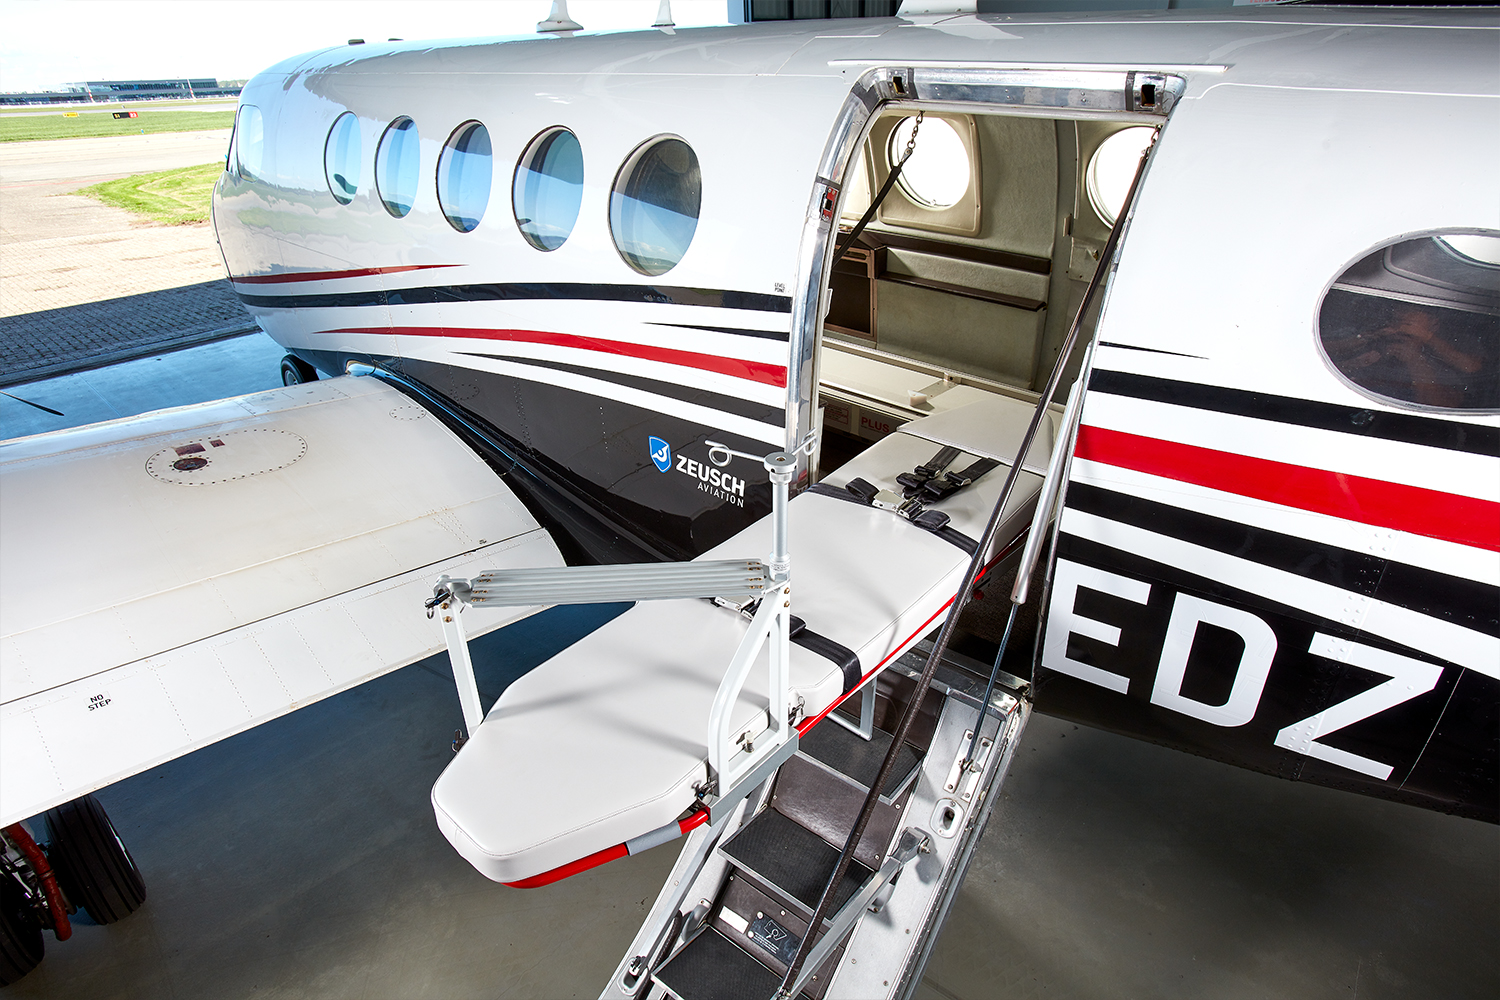 Zeusch Aviation launches King Air Medevac in Spain